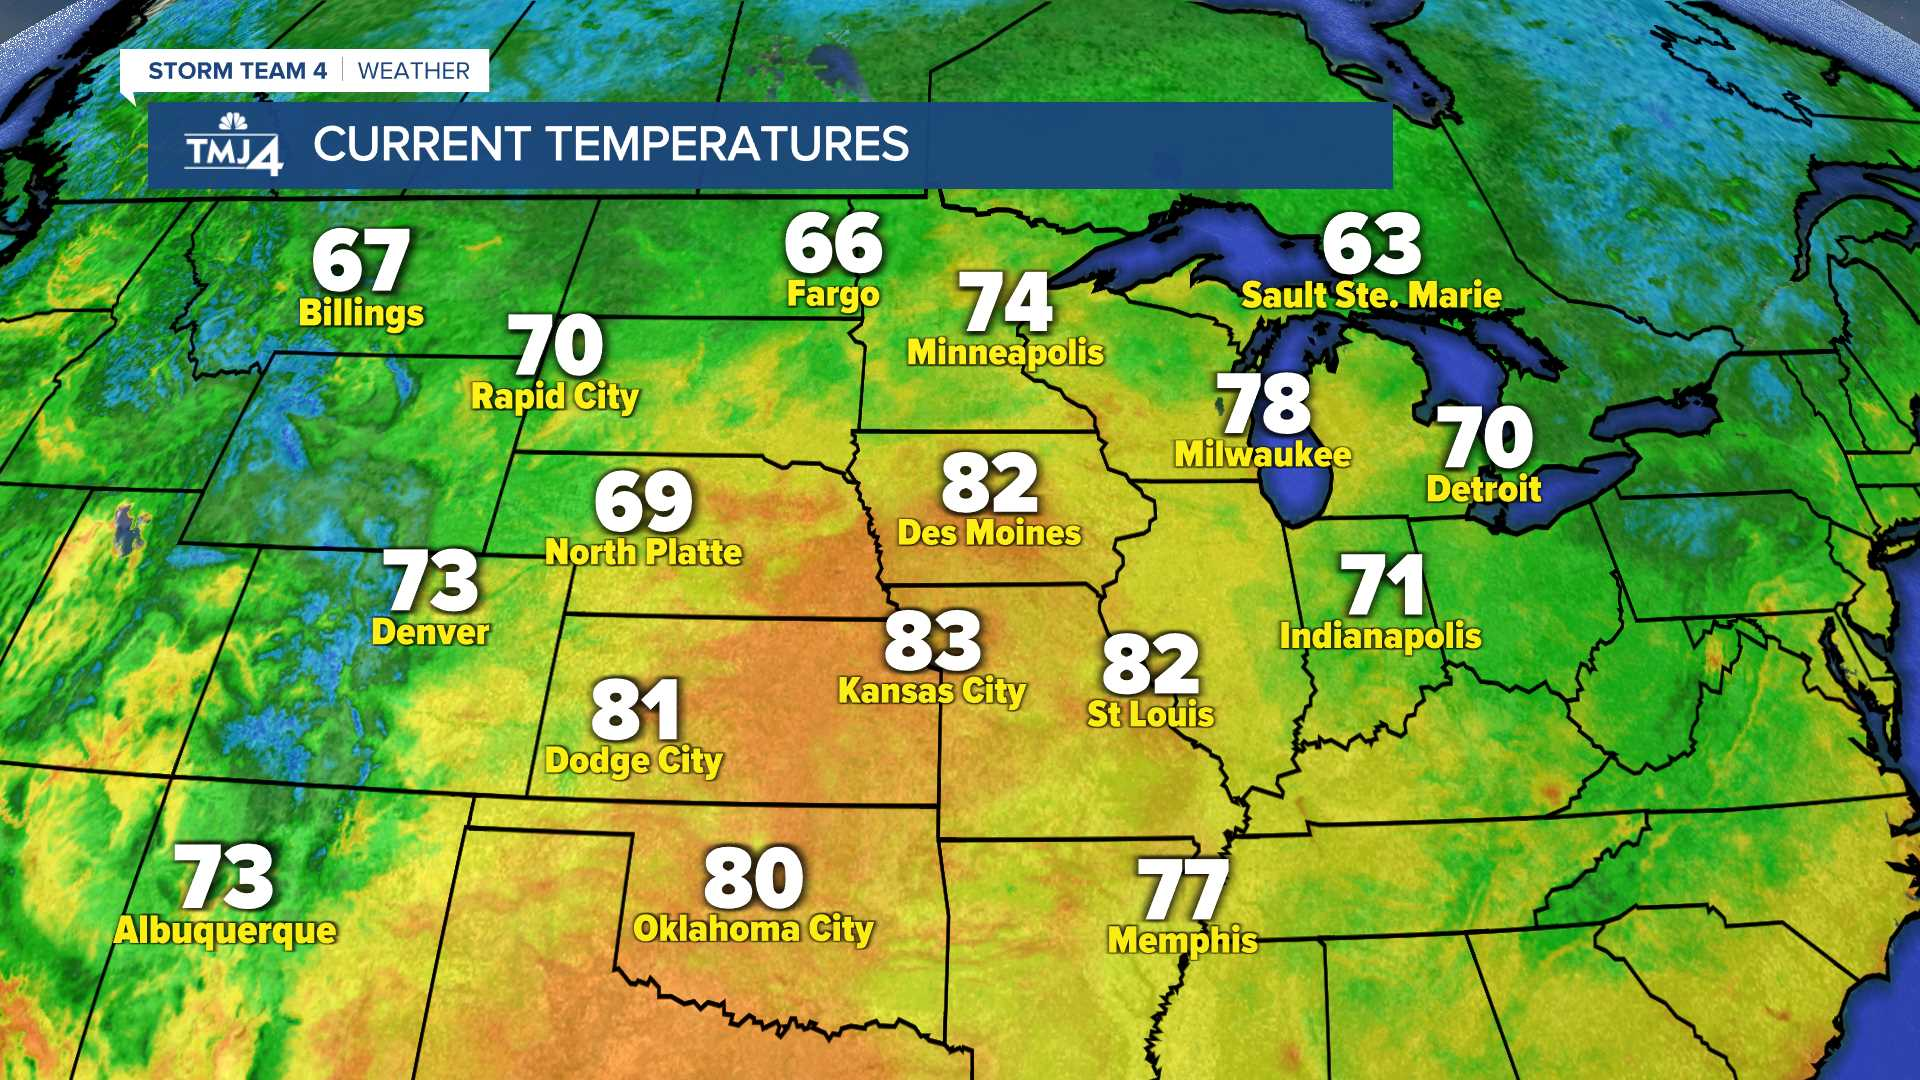 Midwest Current Temperatures